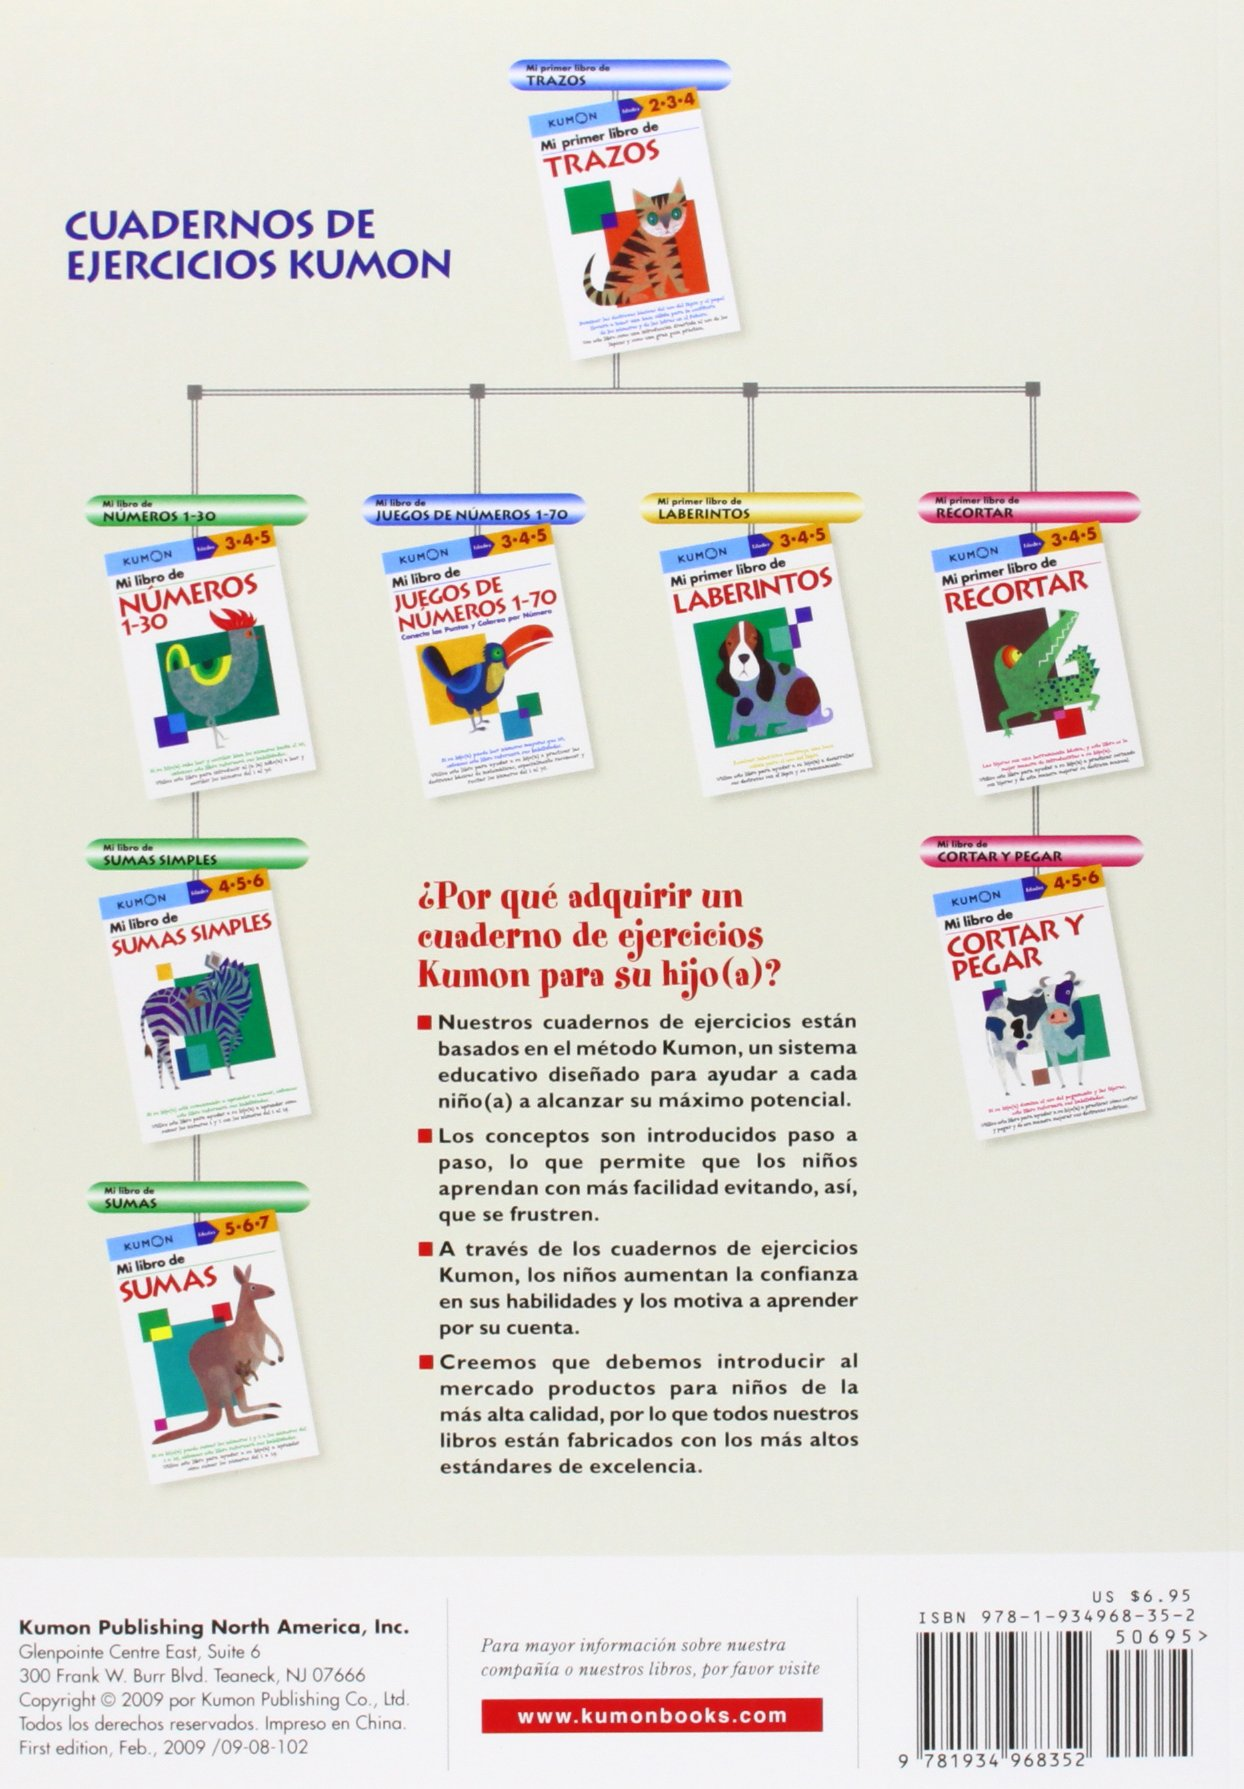 Mi Libro de Sumas Simples: Amazon.es: Kumon Publishing: Libros